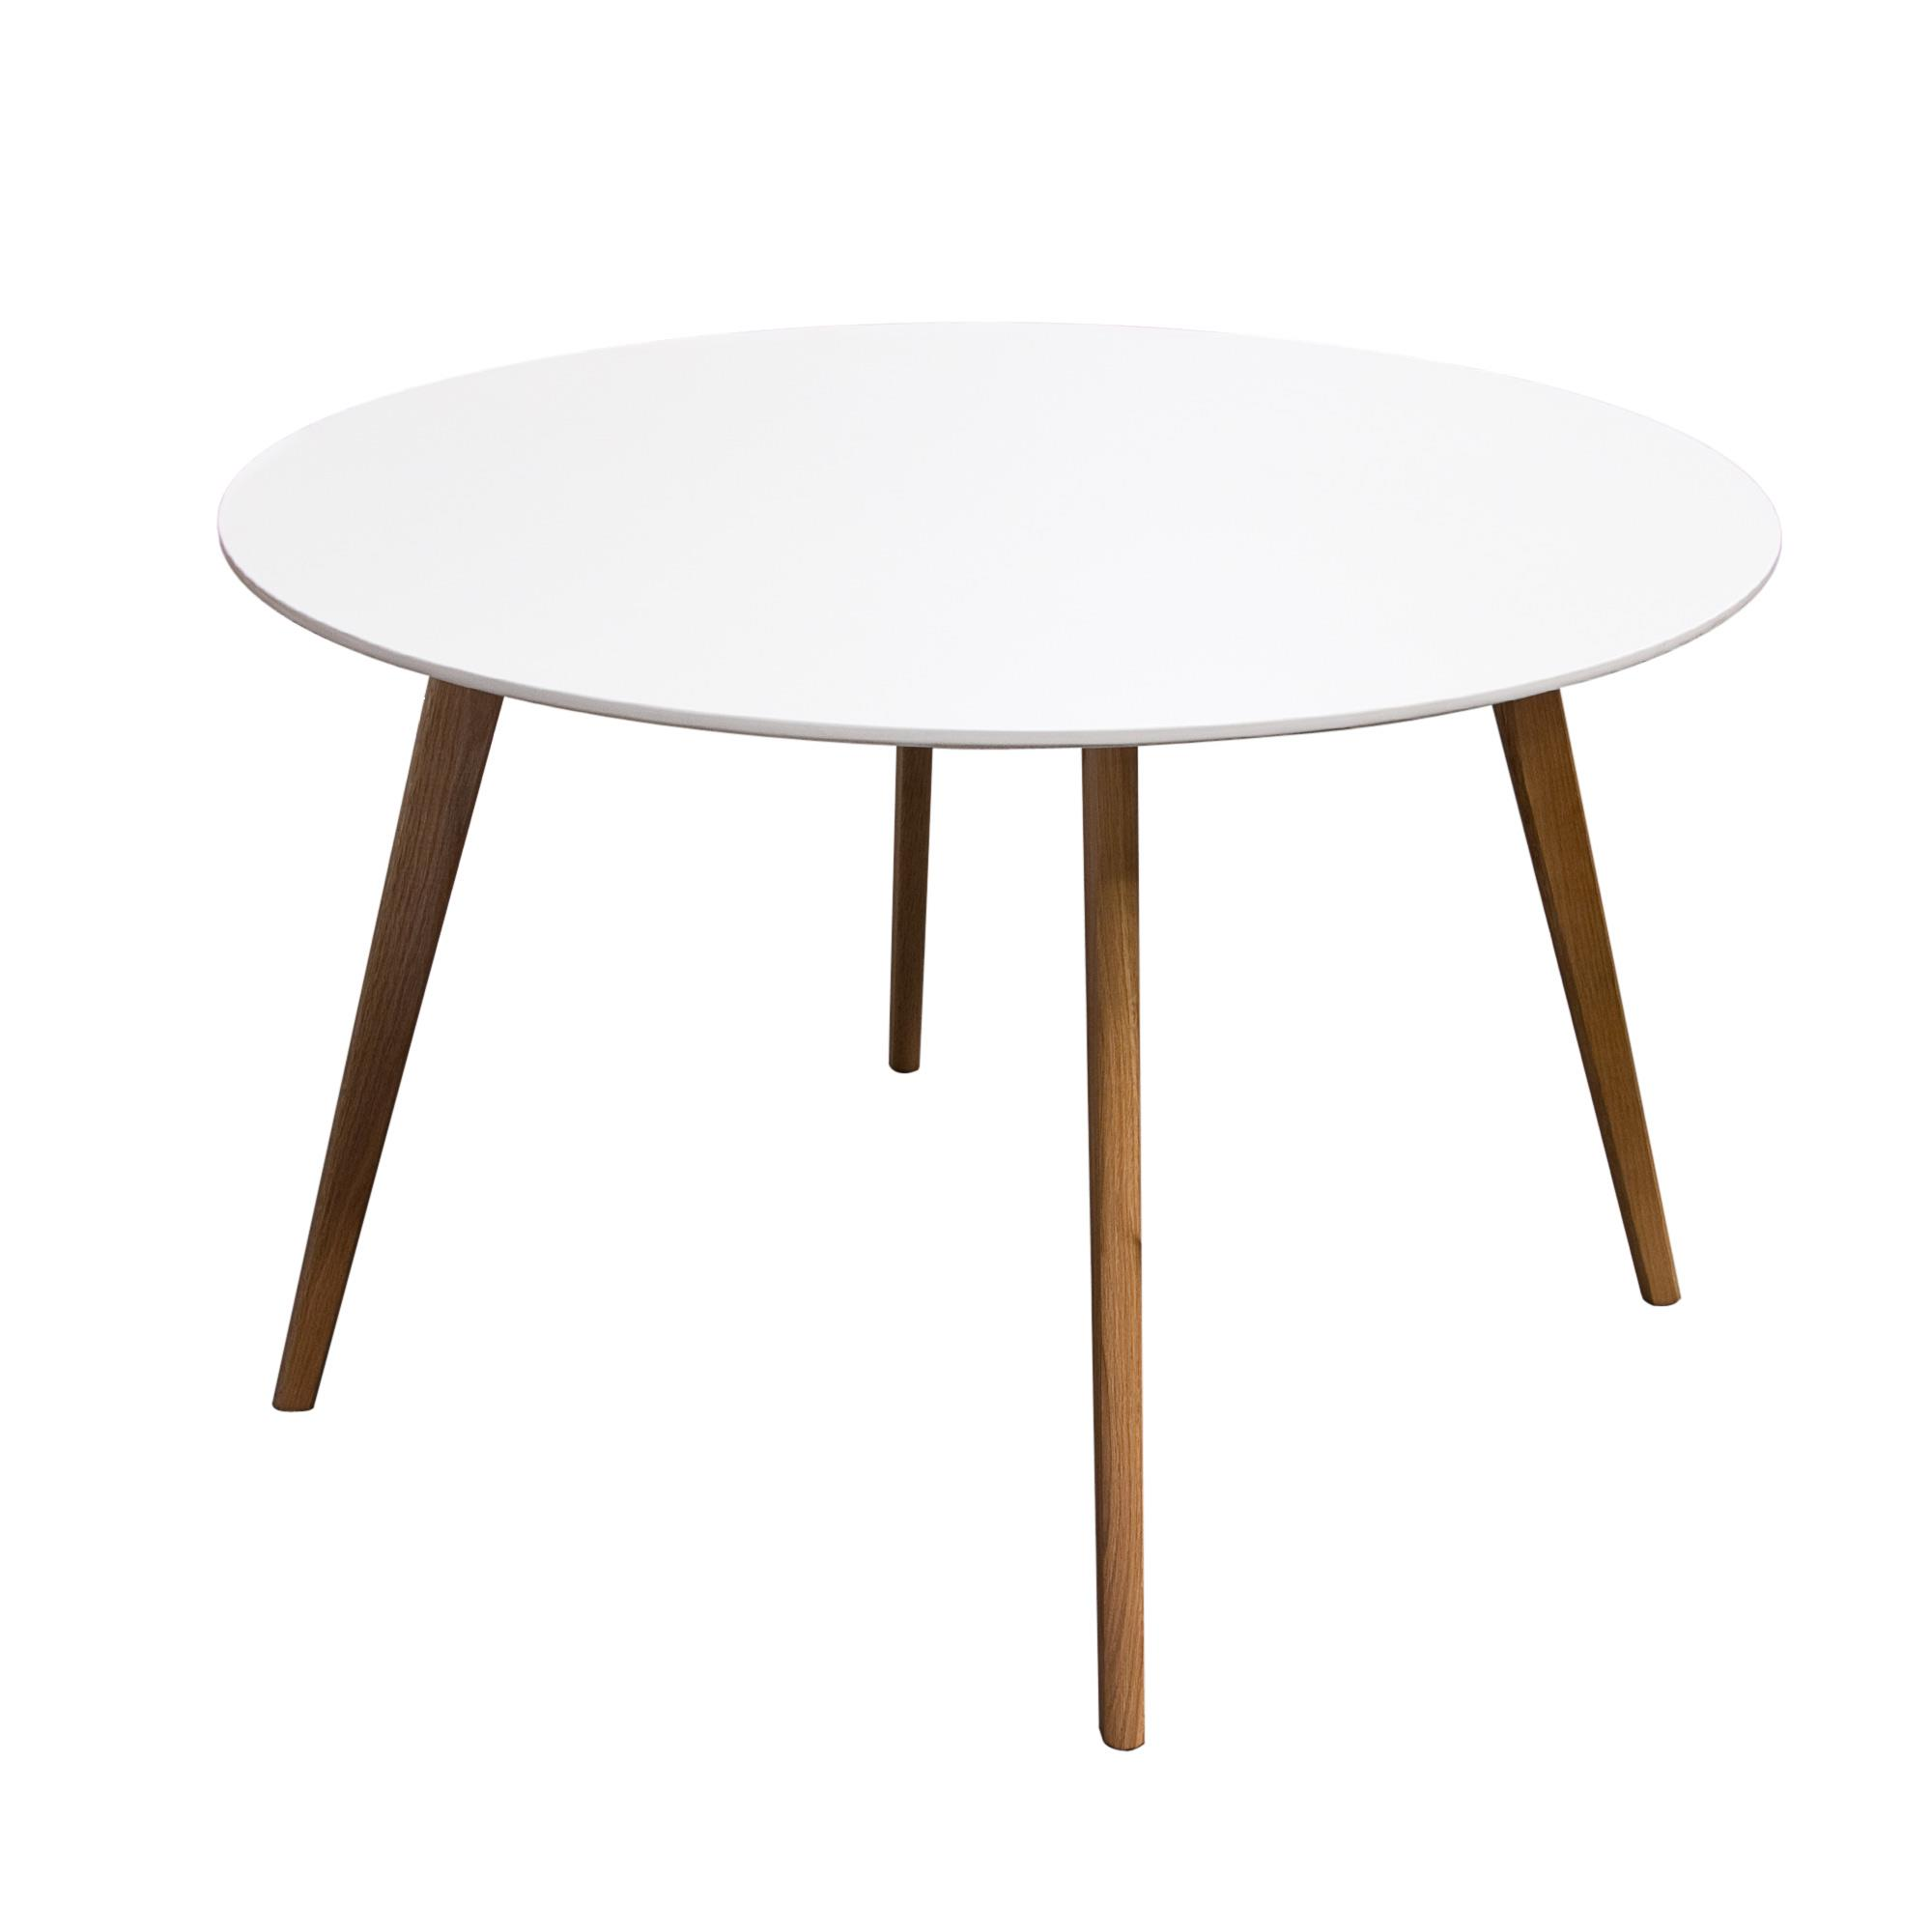 Diamond Sofa Urban Dining  Round Retro Dining Table with Solid Oak Legs - Item Number: COMETDTWH